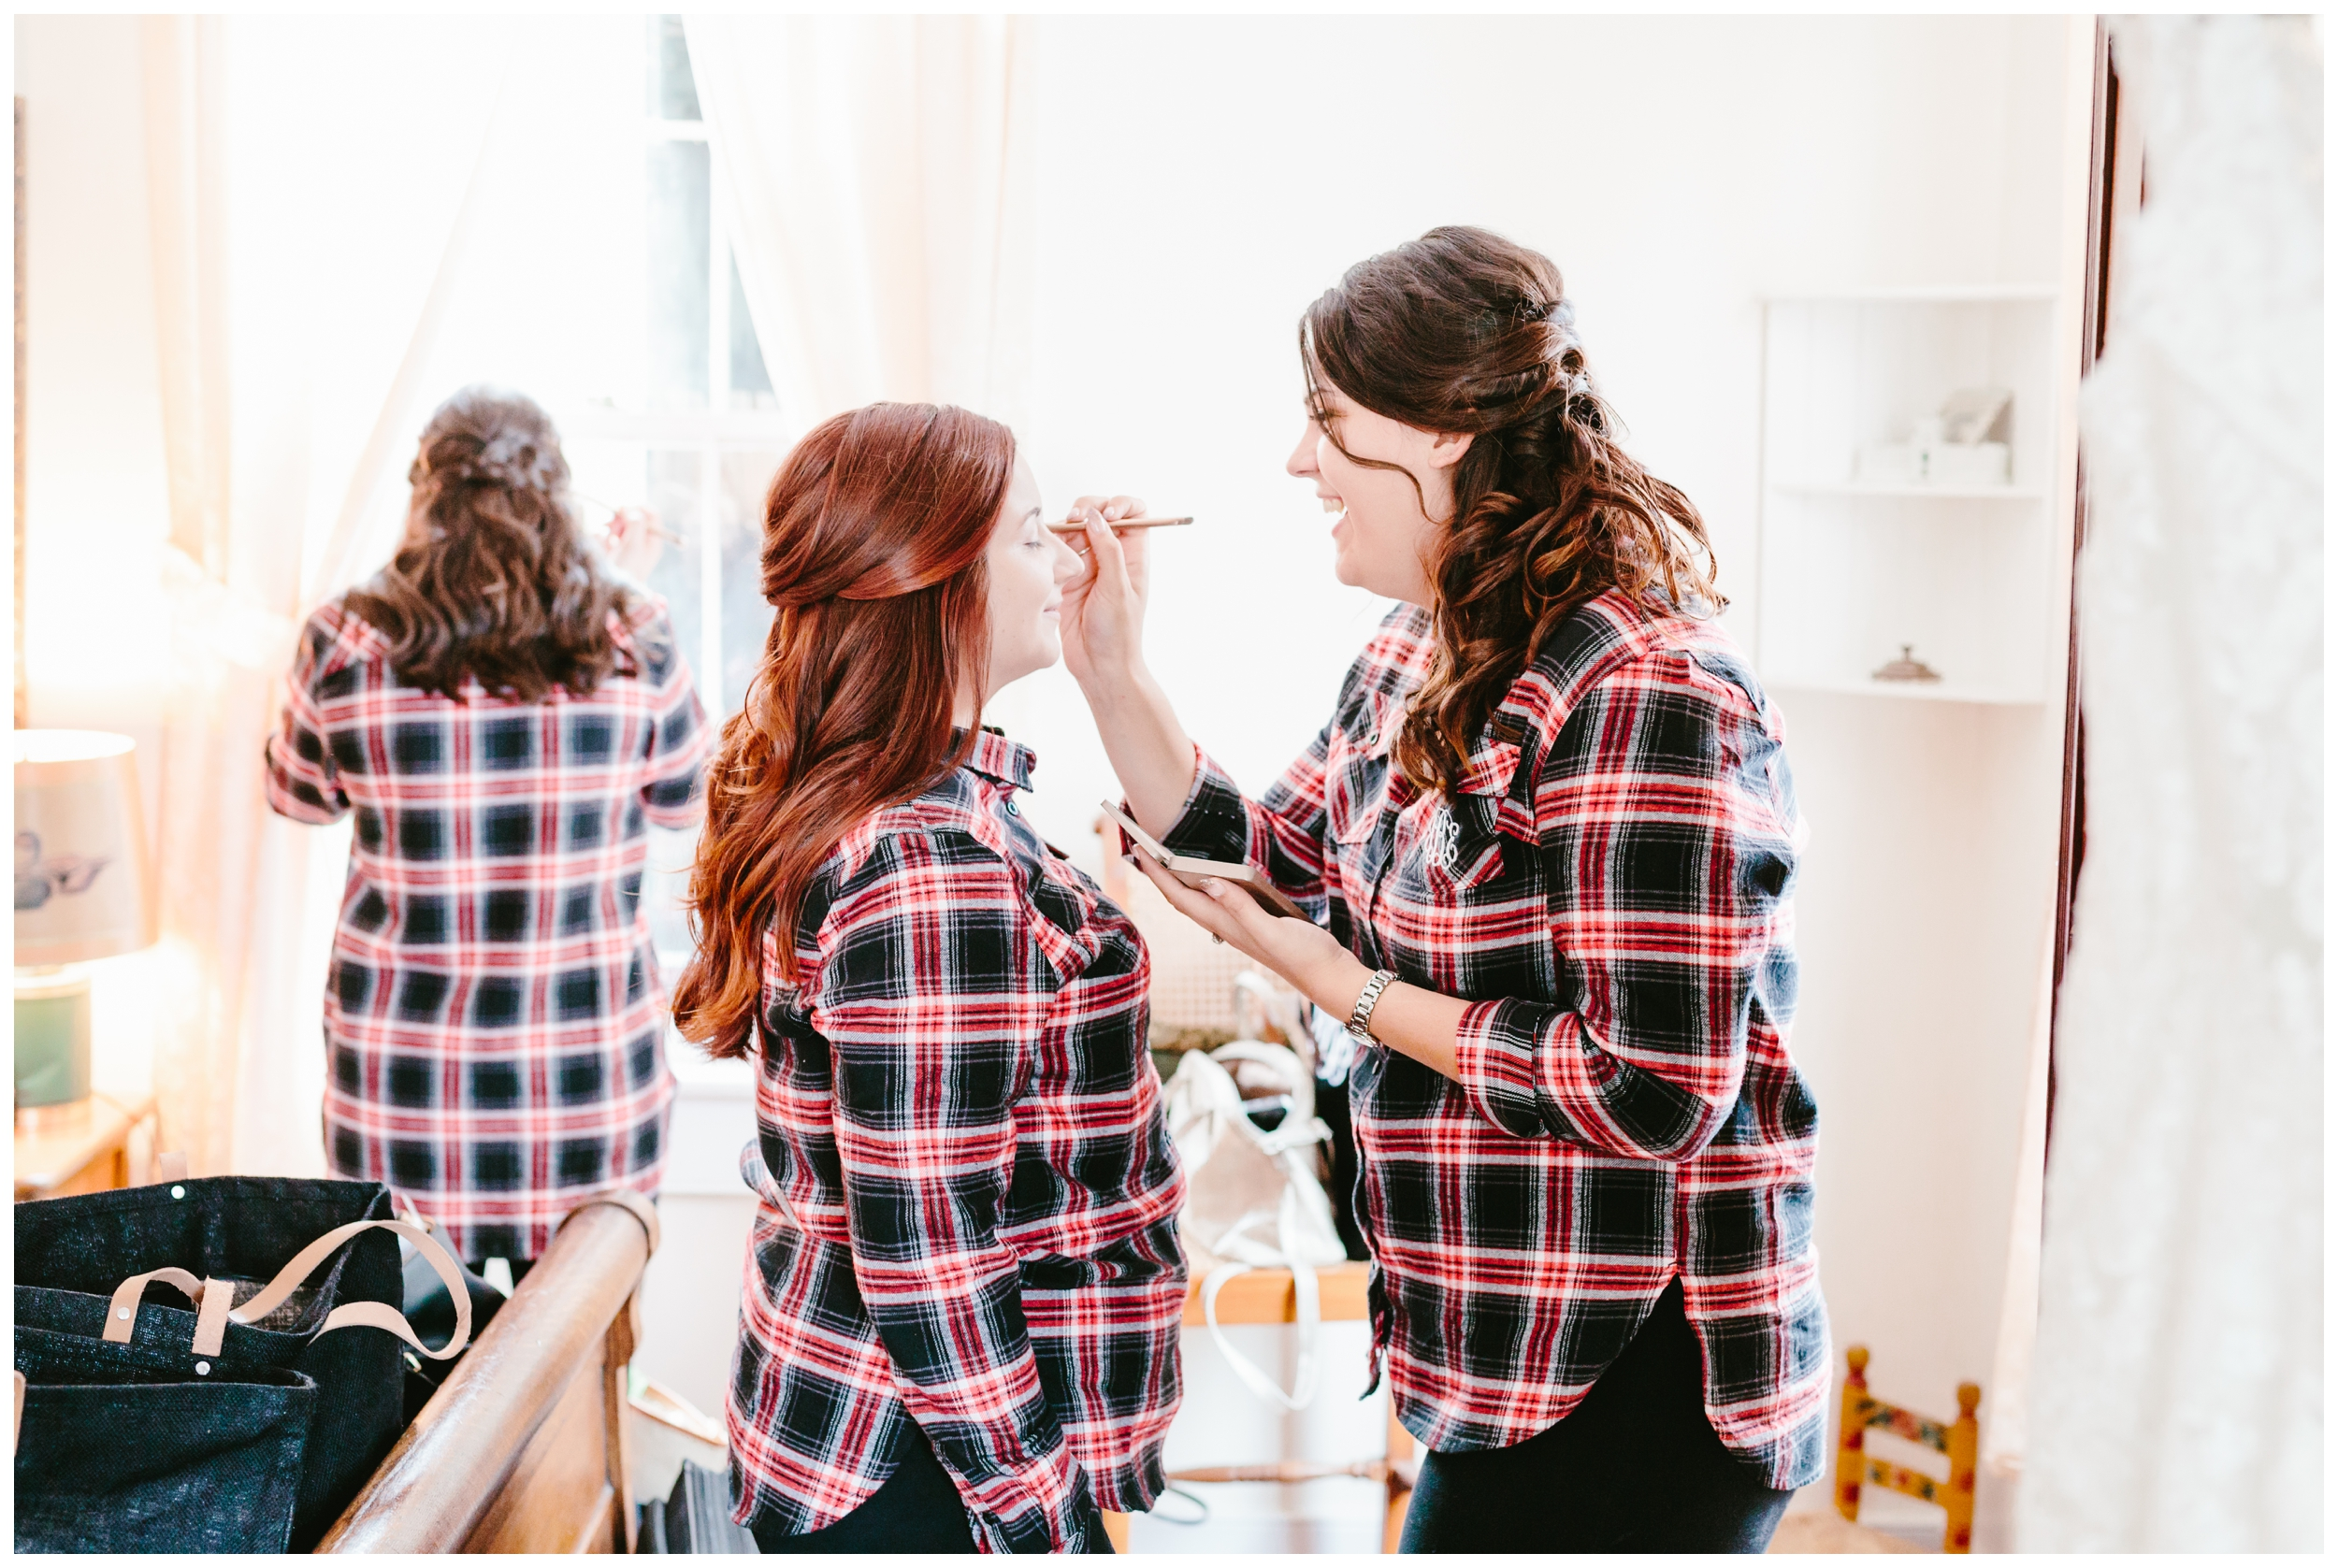 the bridesmaids were helping each other with their make-up.